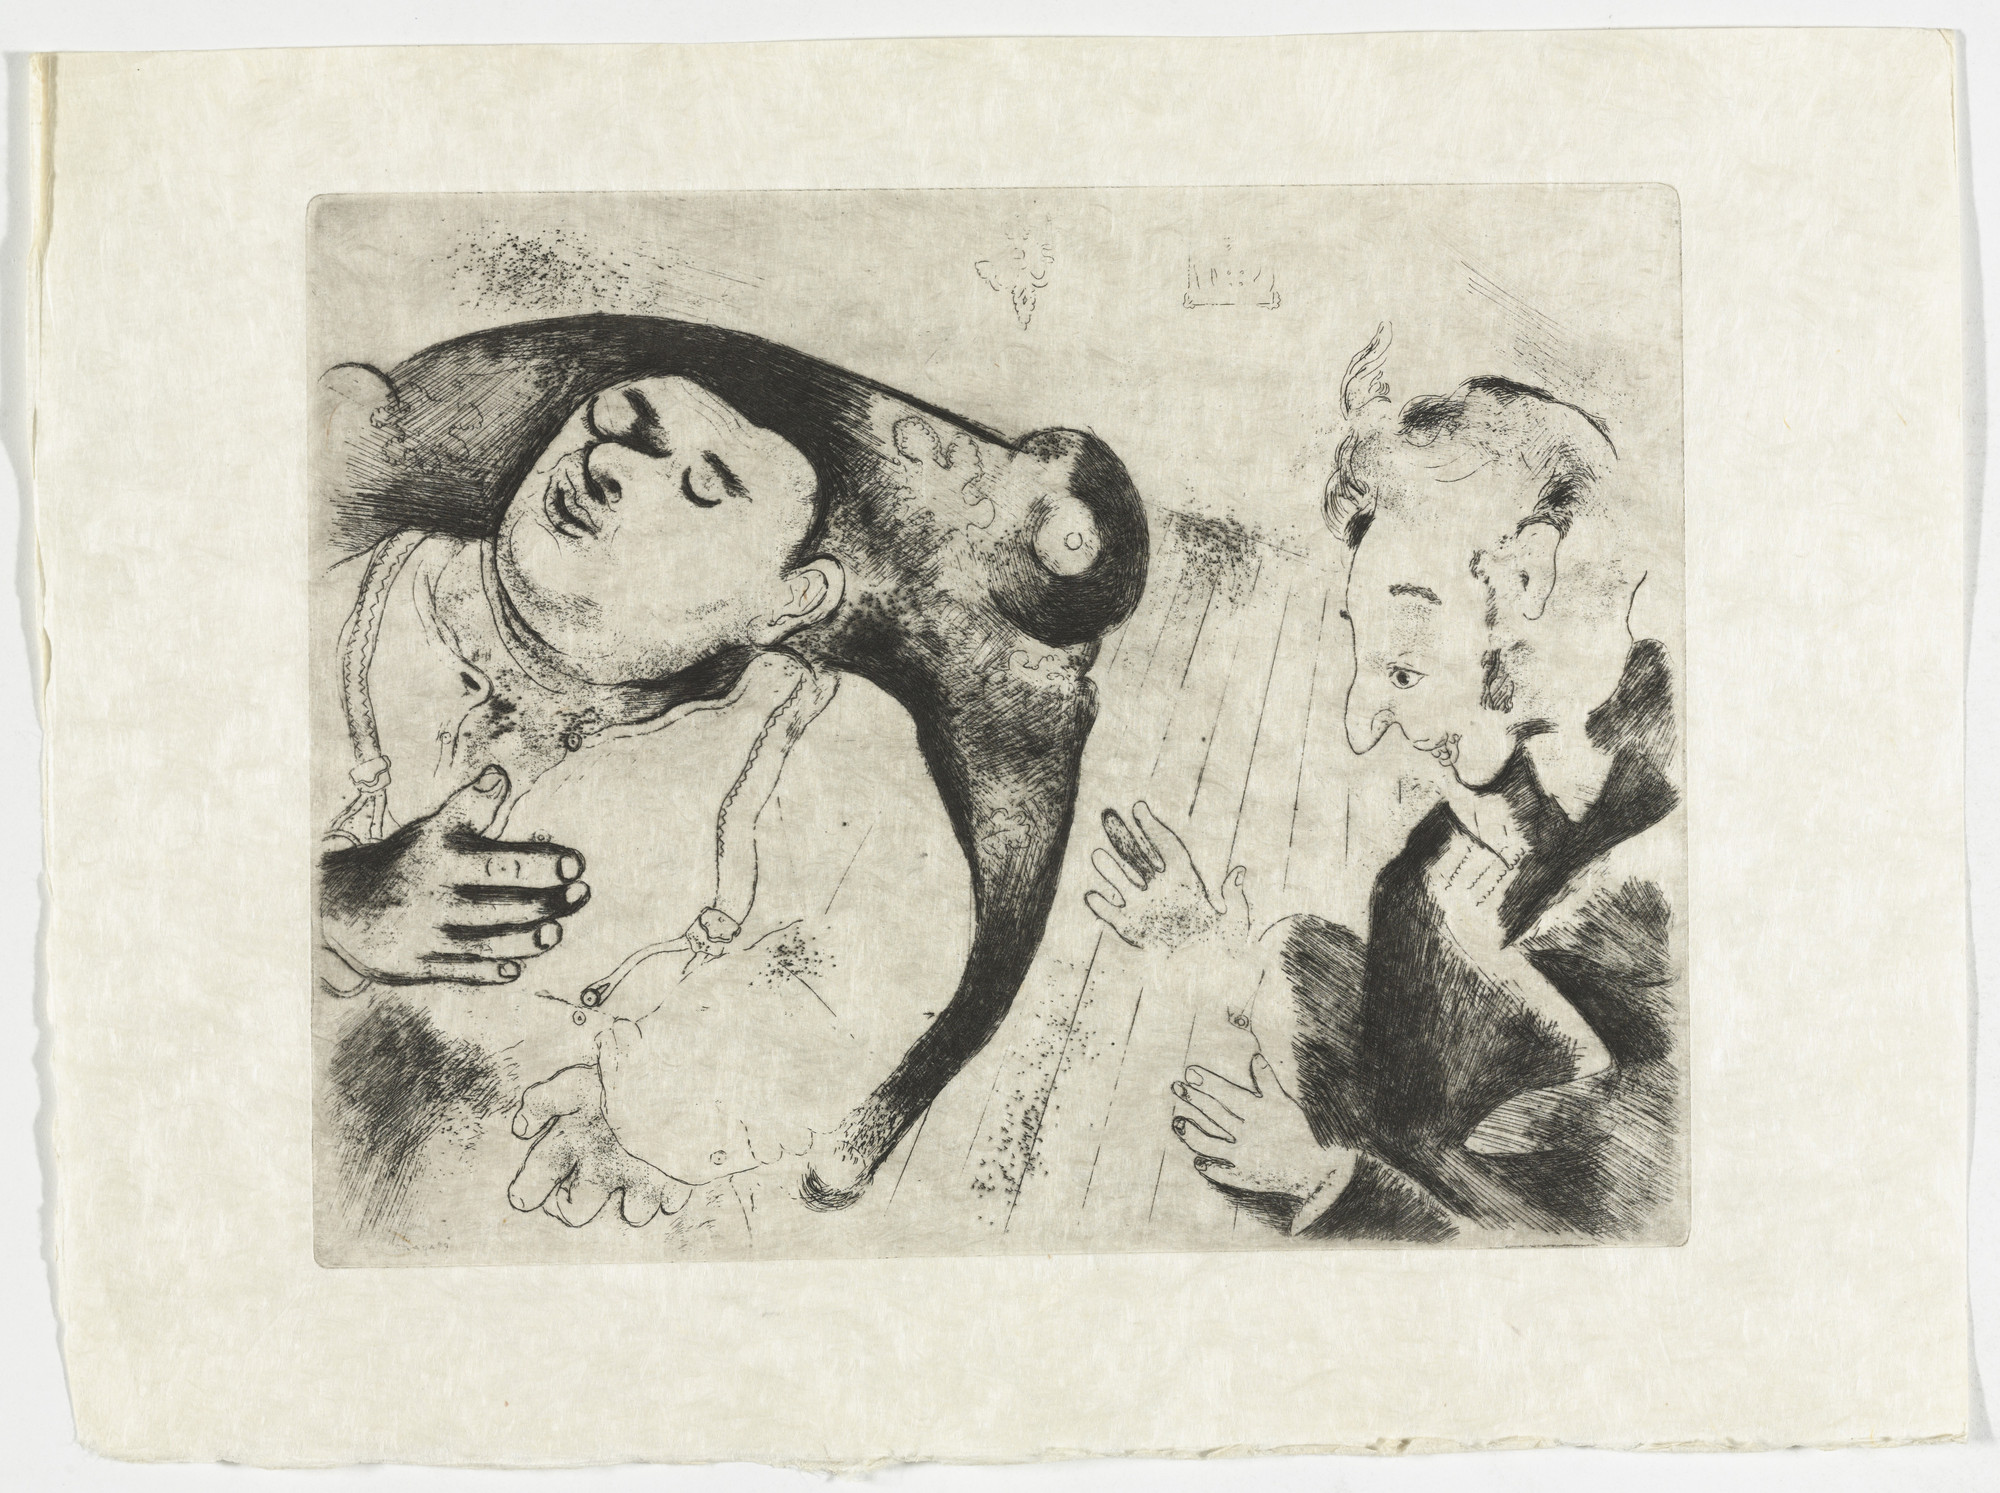 Marc Chagall. Tchitchikov and Sobakévitch Discuss Business (Tchitchikov et Sobakévitch discutent affaires), plate XXXVII (supplementary suite) from Les Âmes mortes. 1923-48